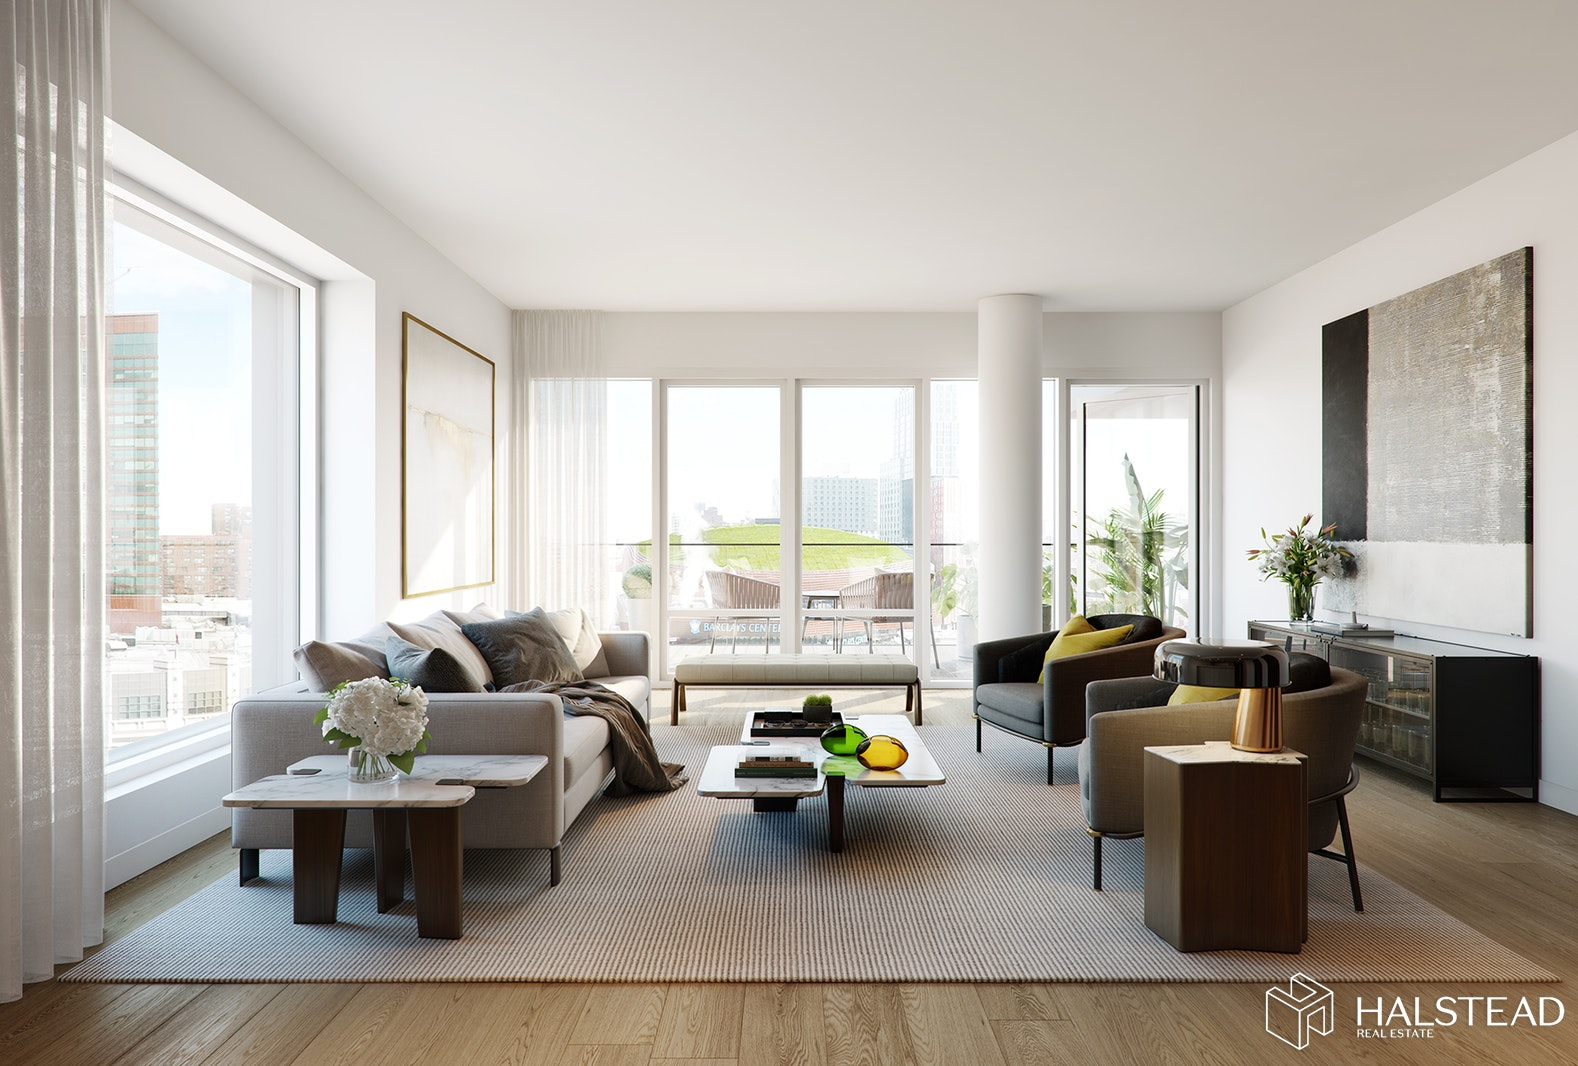 561 Pacific Street 408, Boerum Hill, Brooklyn, NY, 11217, $1,725,000, Property For Sale, Halstead Real Estate, Photo 6